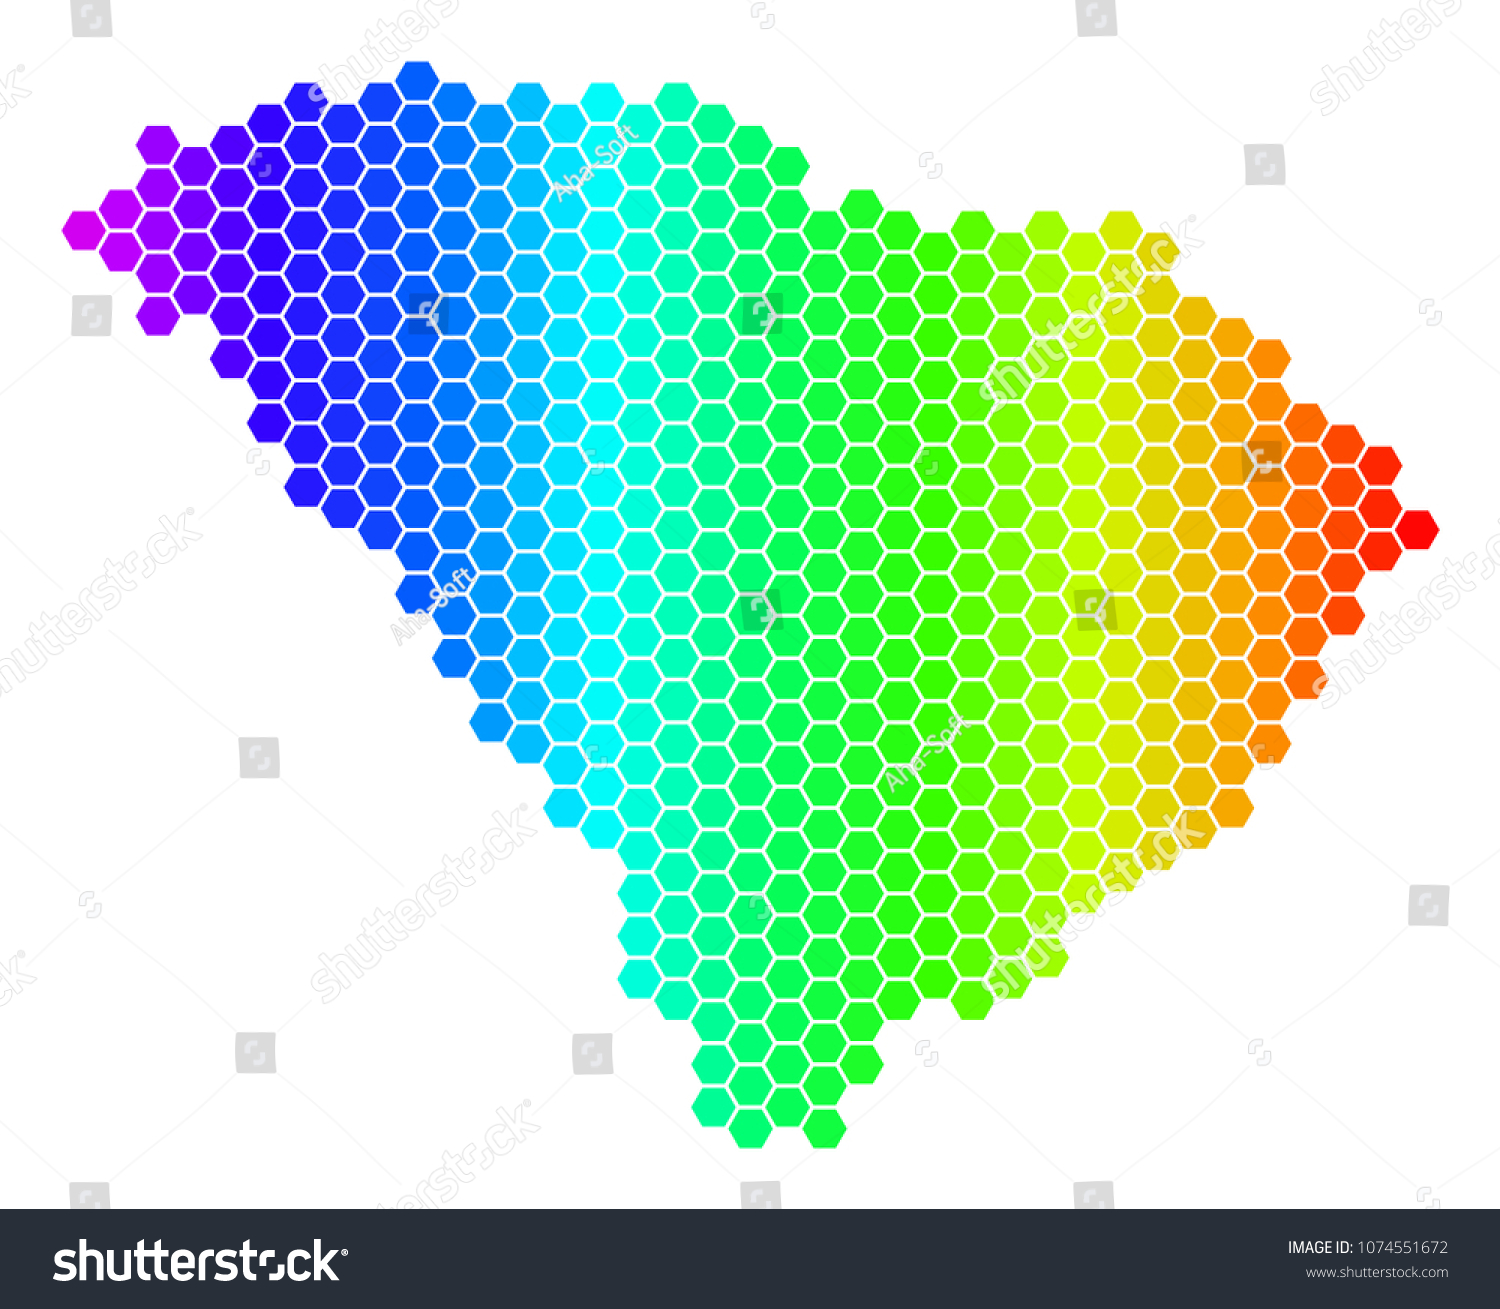 Hexagon Spectrum South Carolina State Map Stock Vector (Royalty Free ...